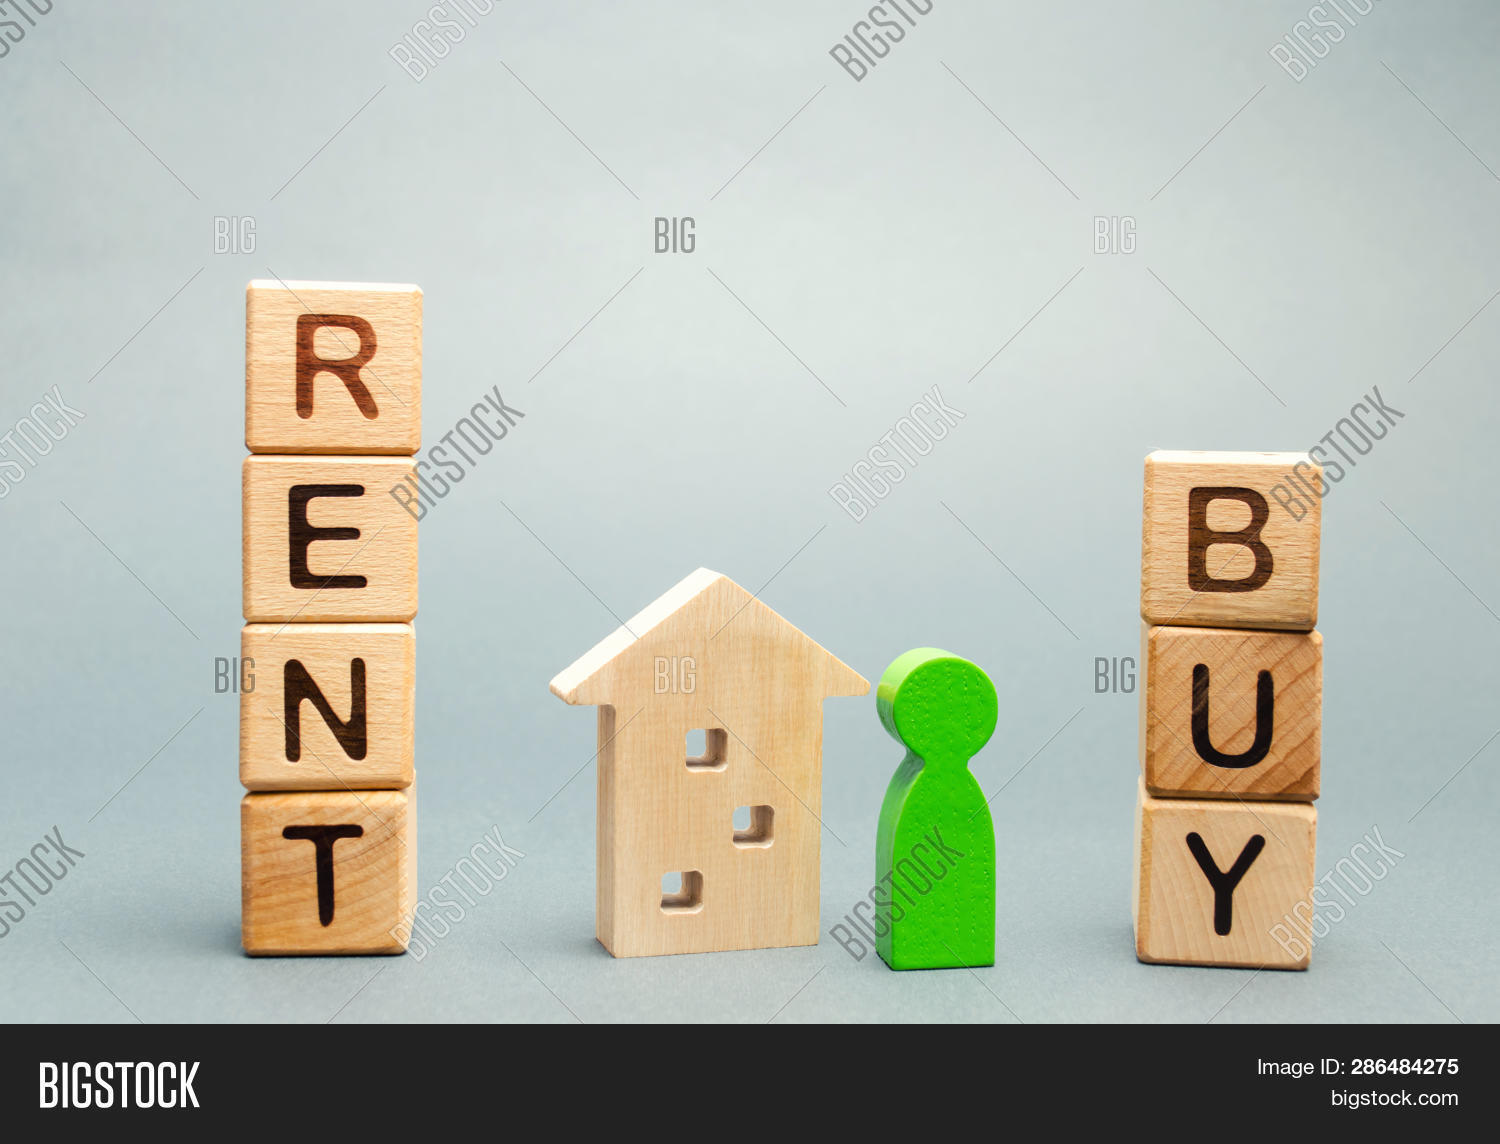 Wooden Blocks With The Word Rent Or Buy And A Person Stands Near The House. Make The Right Decision.